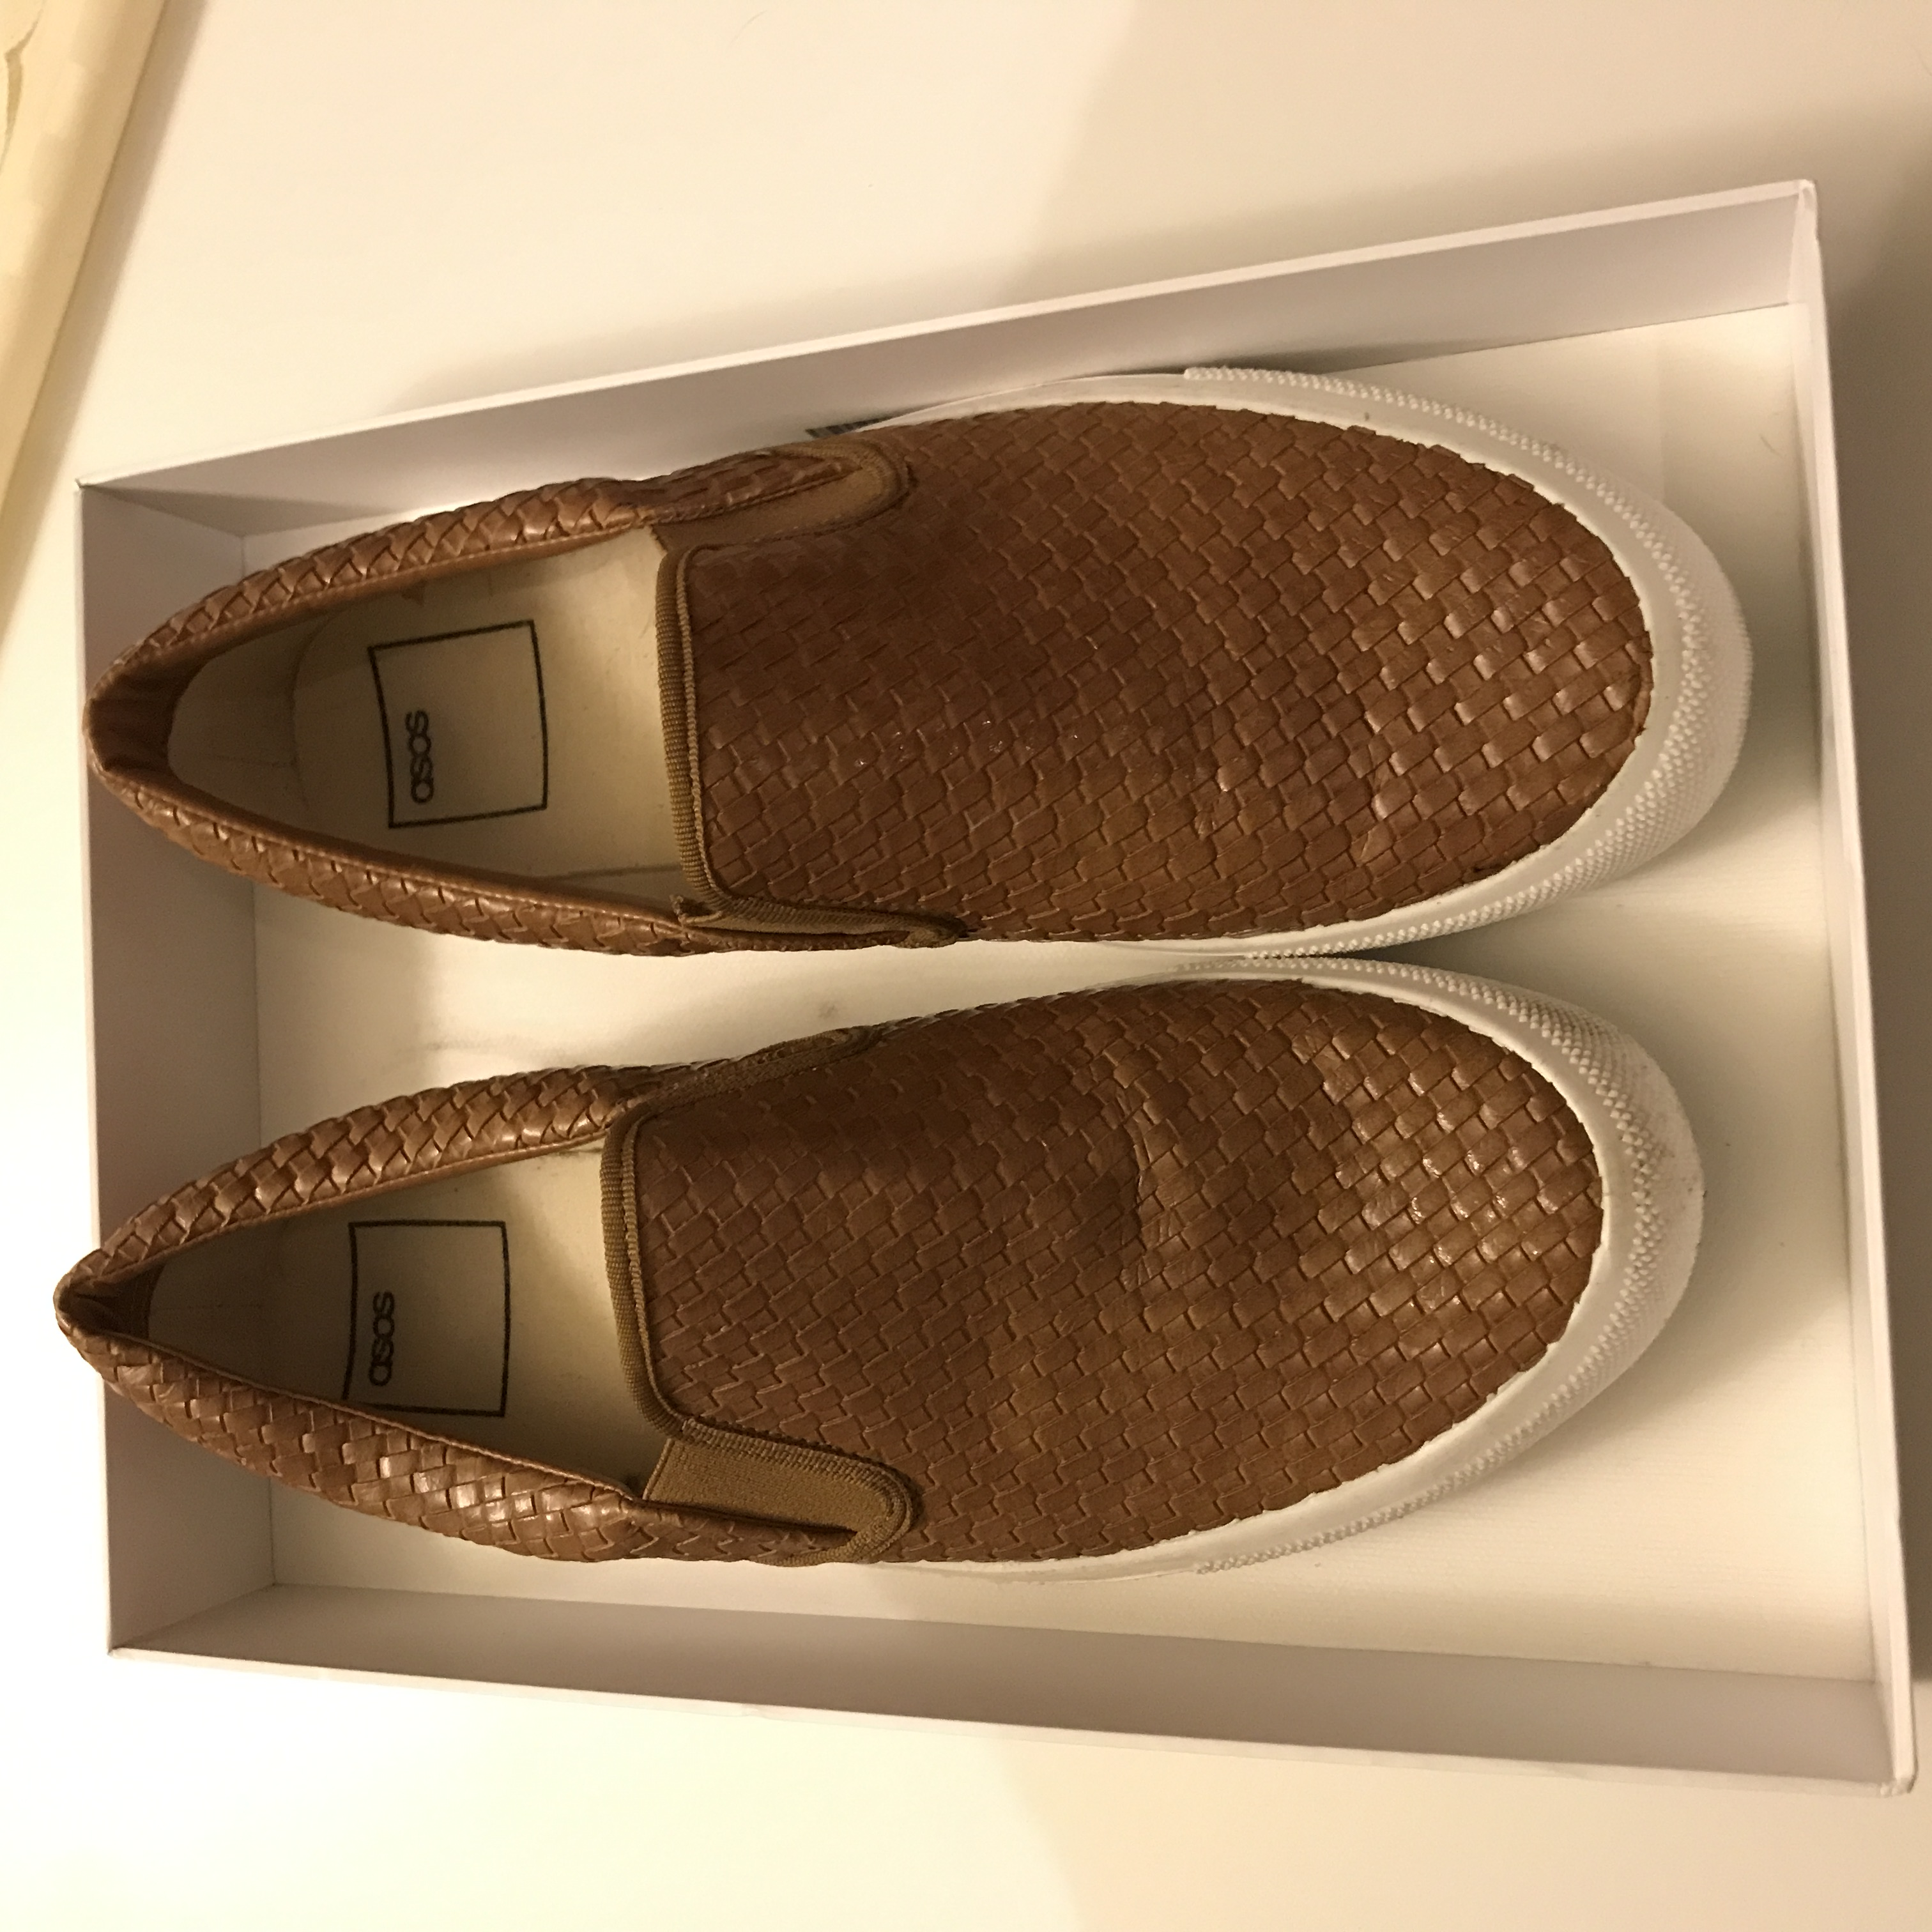 ASOS slip-on men's shoes